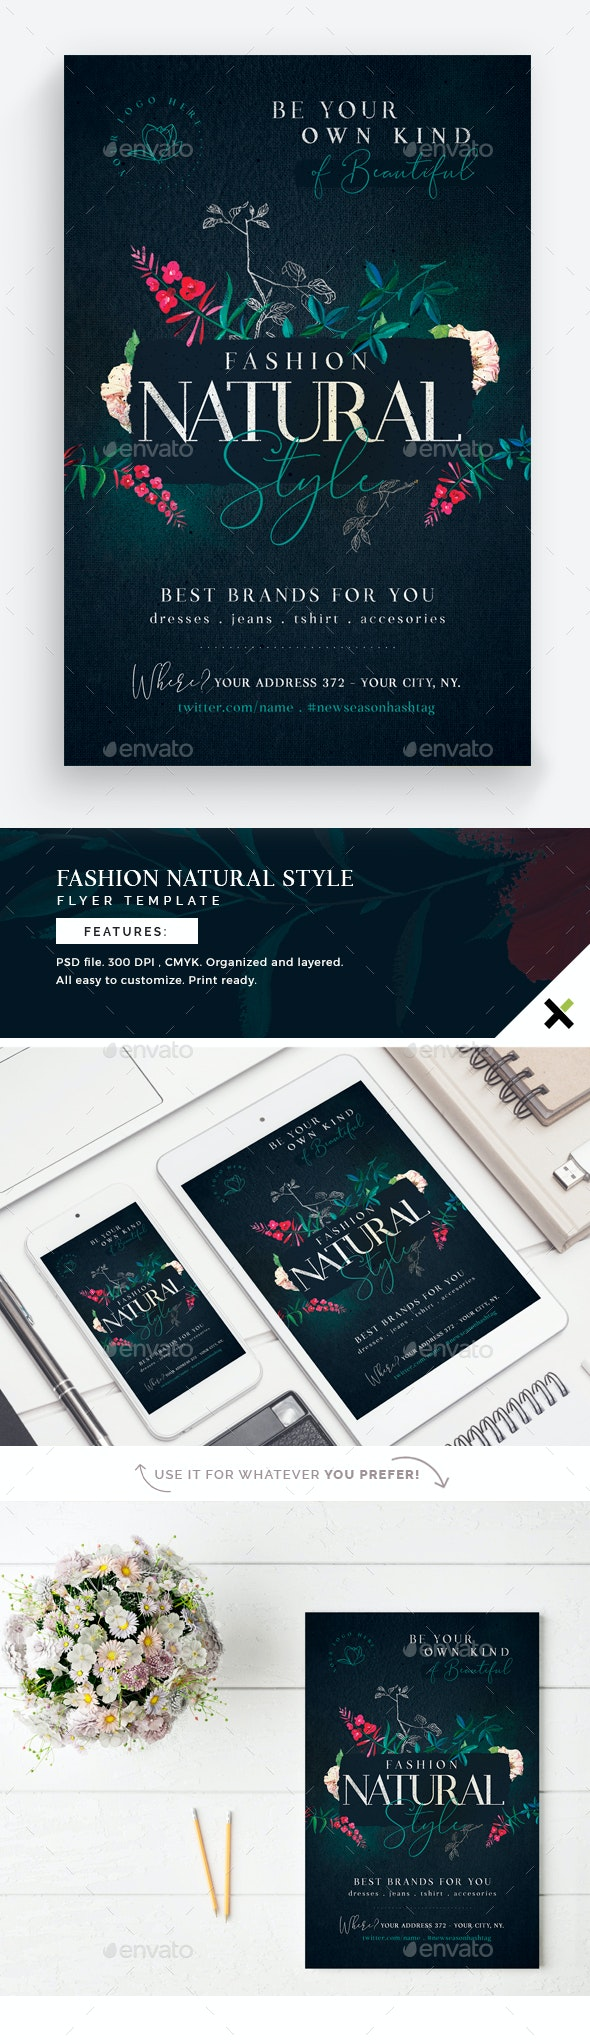 Fashion Natural Style Flyer Template - Flyers Print Templates